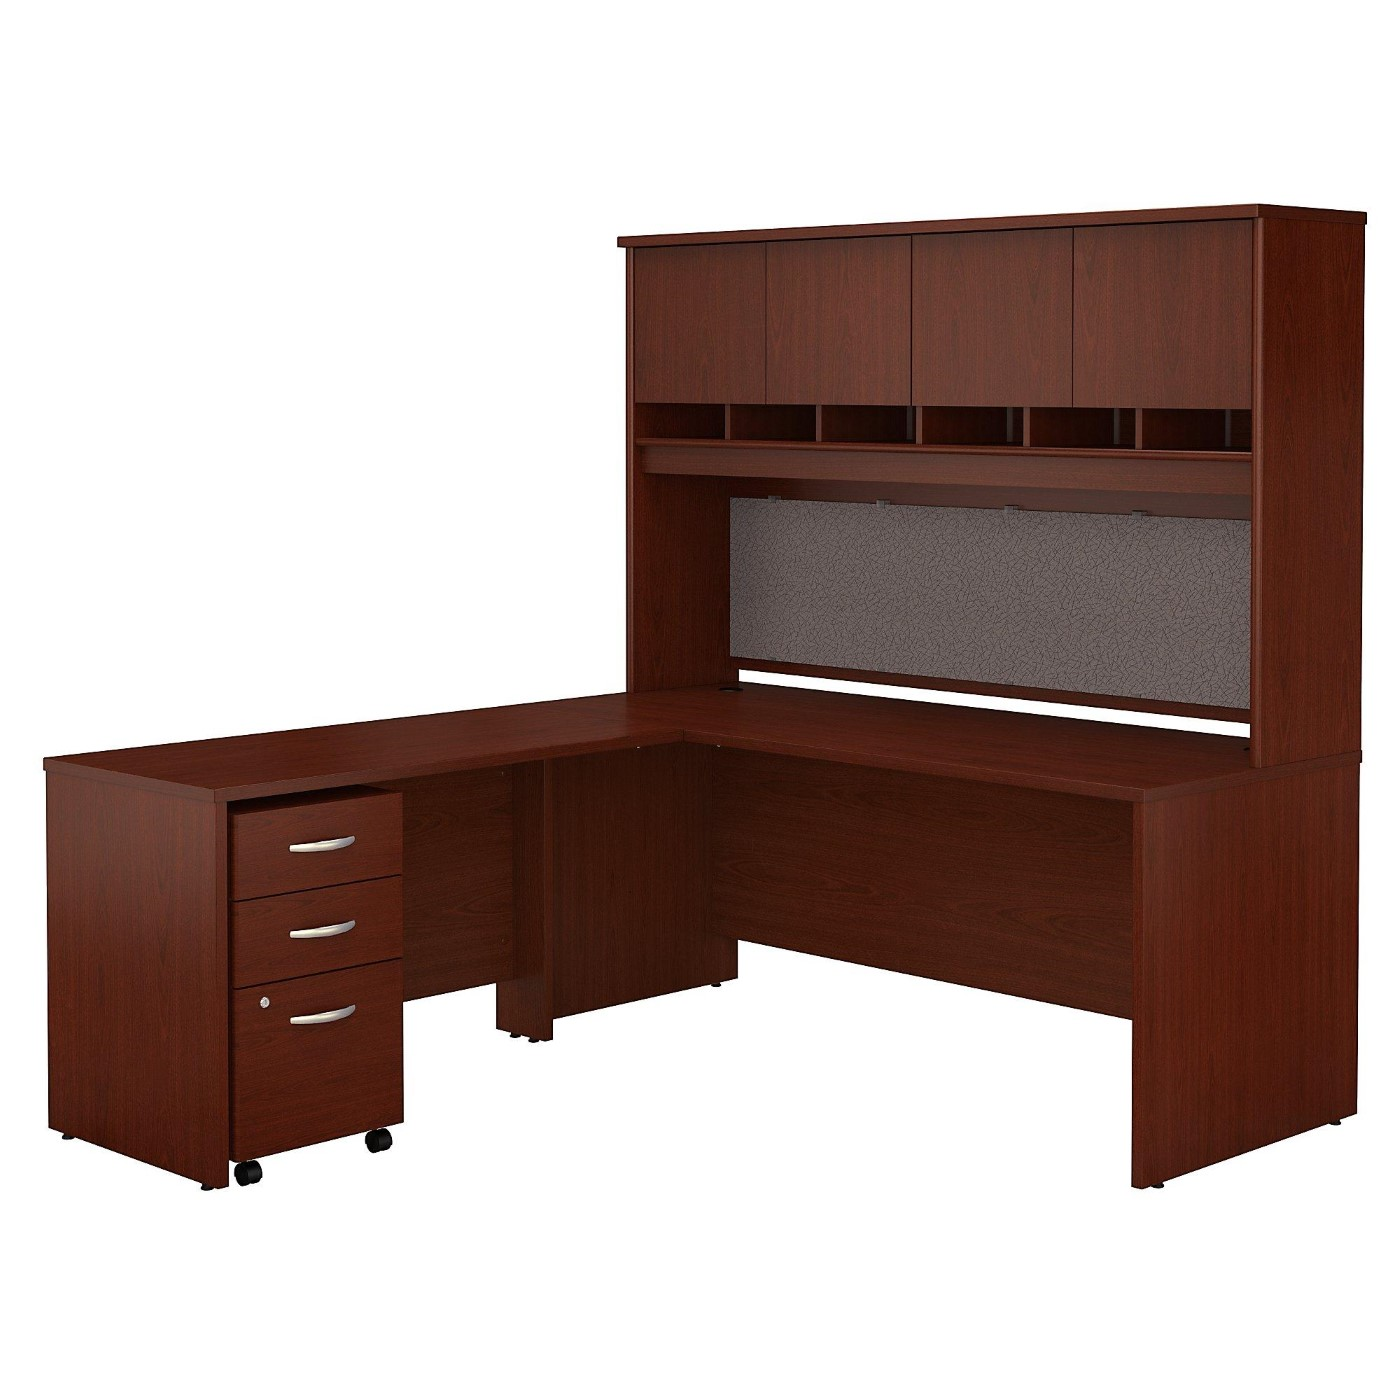 BUSH BUSINESS FURNITURE SERIES C 72W L SHAPED DESK WITH HUTCH AND MOBILE FILE CABINET. FREE SHIPPING  VIDEO BELOW.